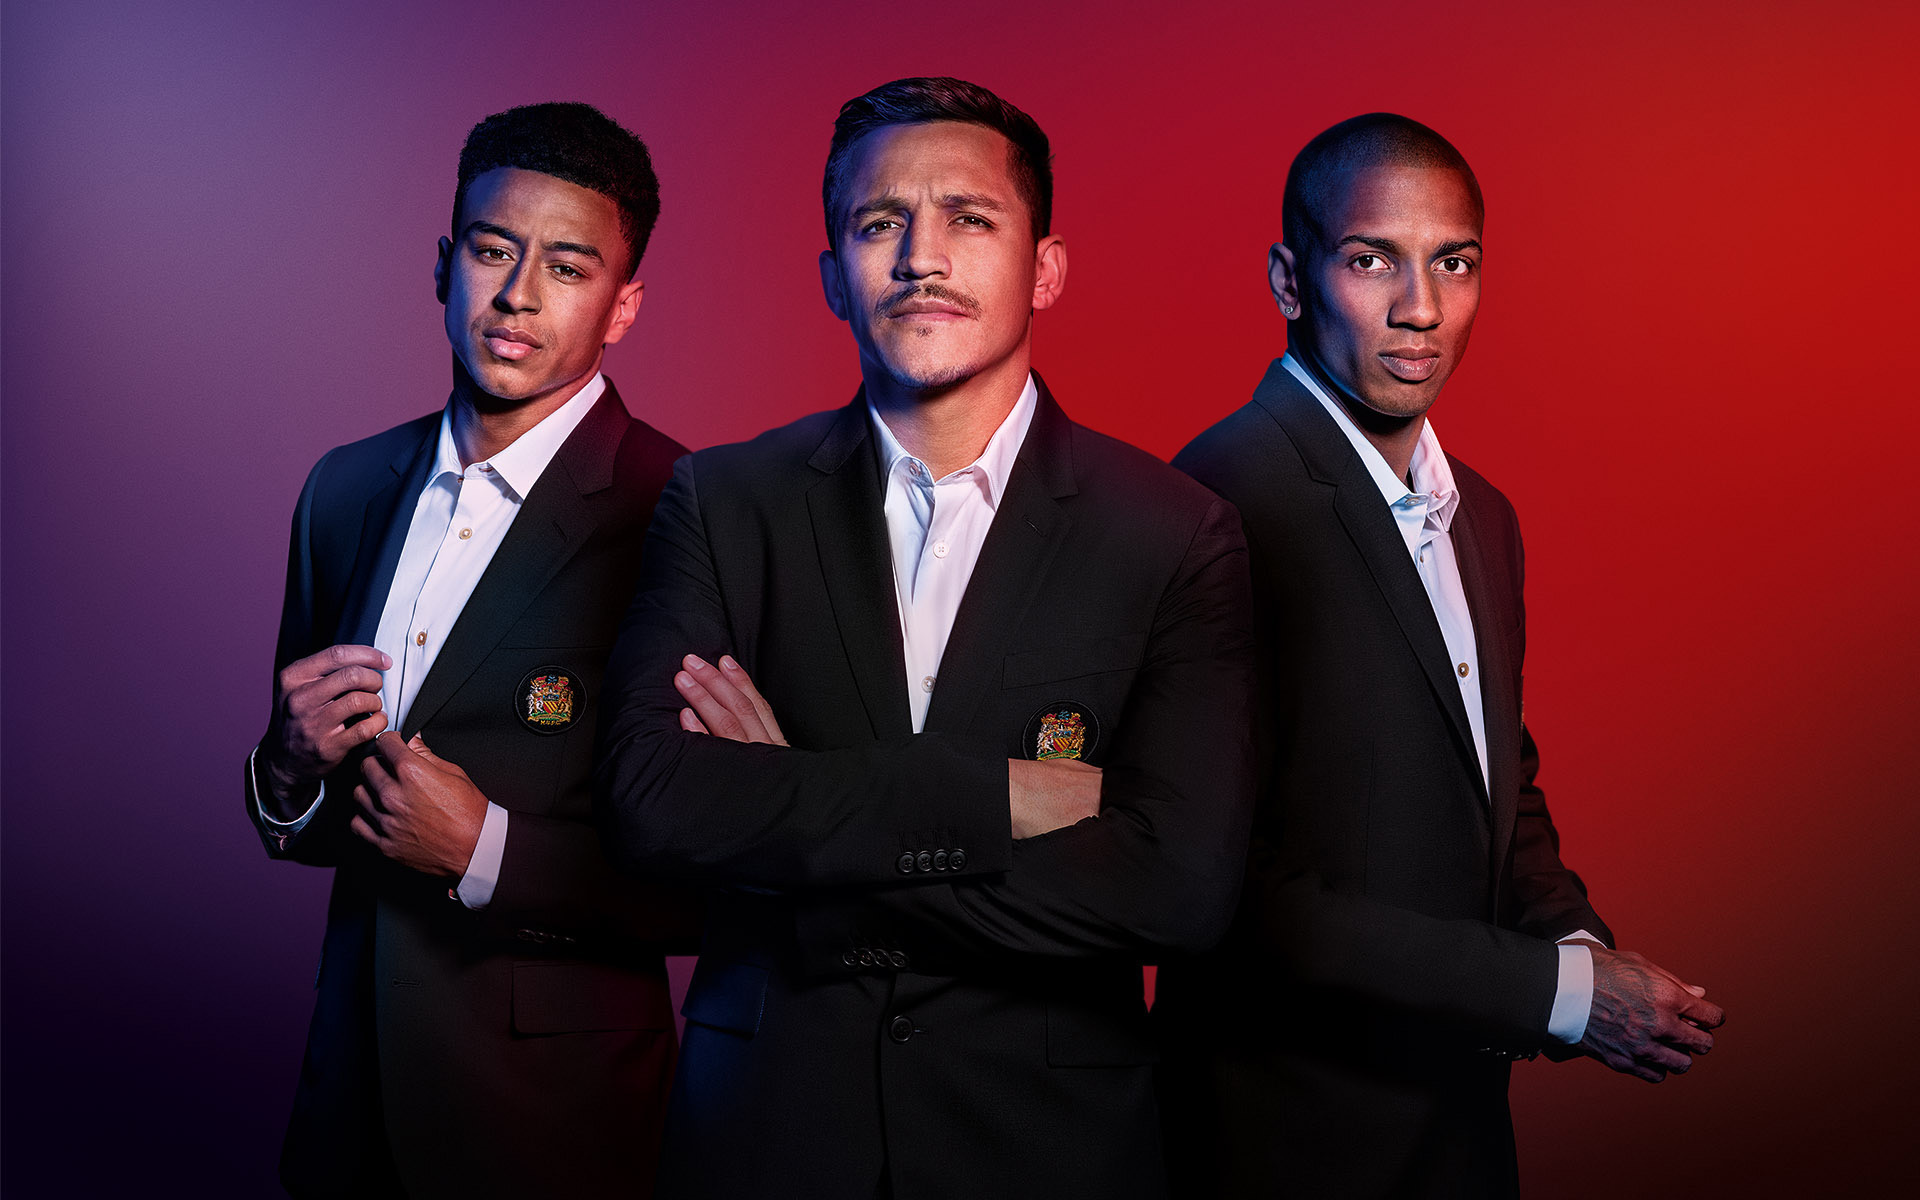 CHIVAS REGAL campaign with Manchester United. Jesse Lingard, Alexis Sanchez & Ashley Young ©P Cooper